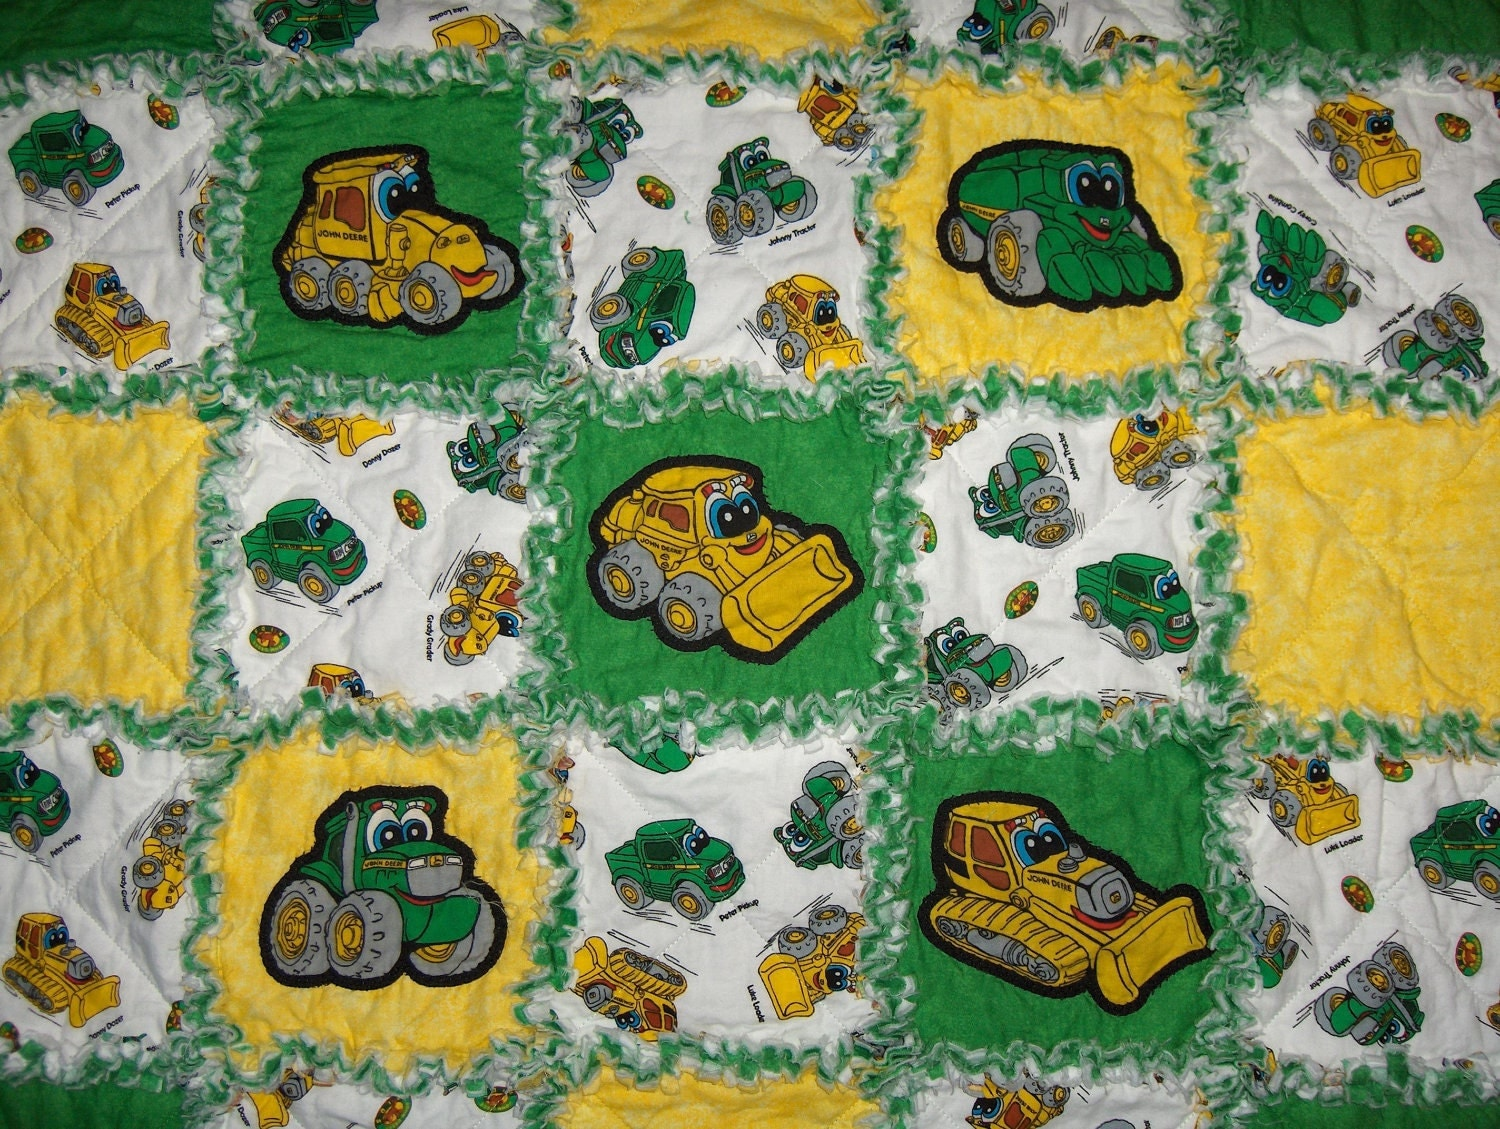 John deere kids fabric rag baby quilt johnny tractor blanket for Childrens quilt fabric